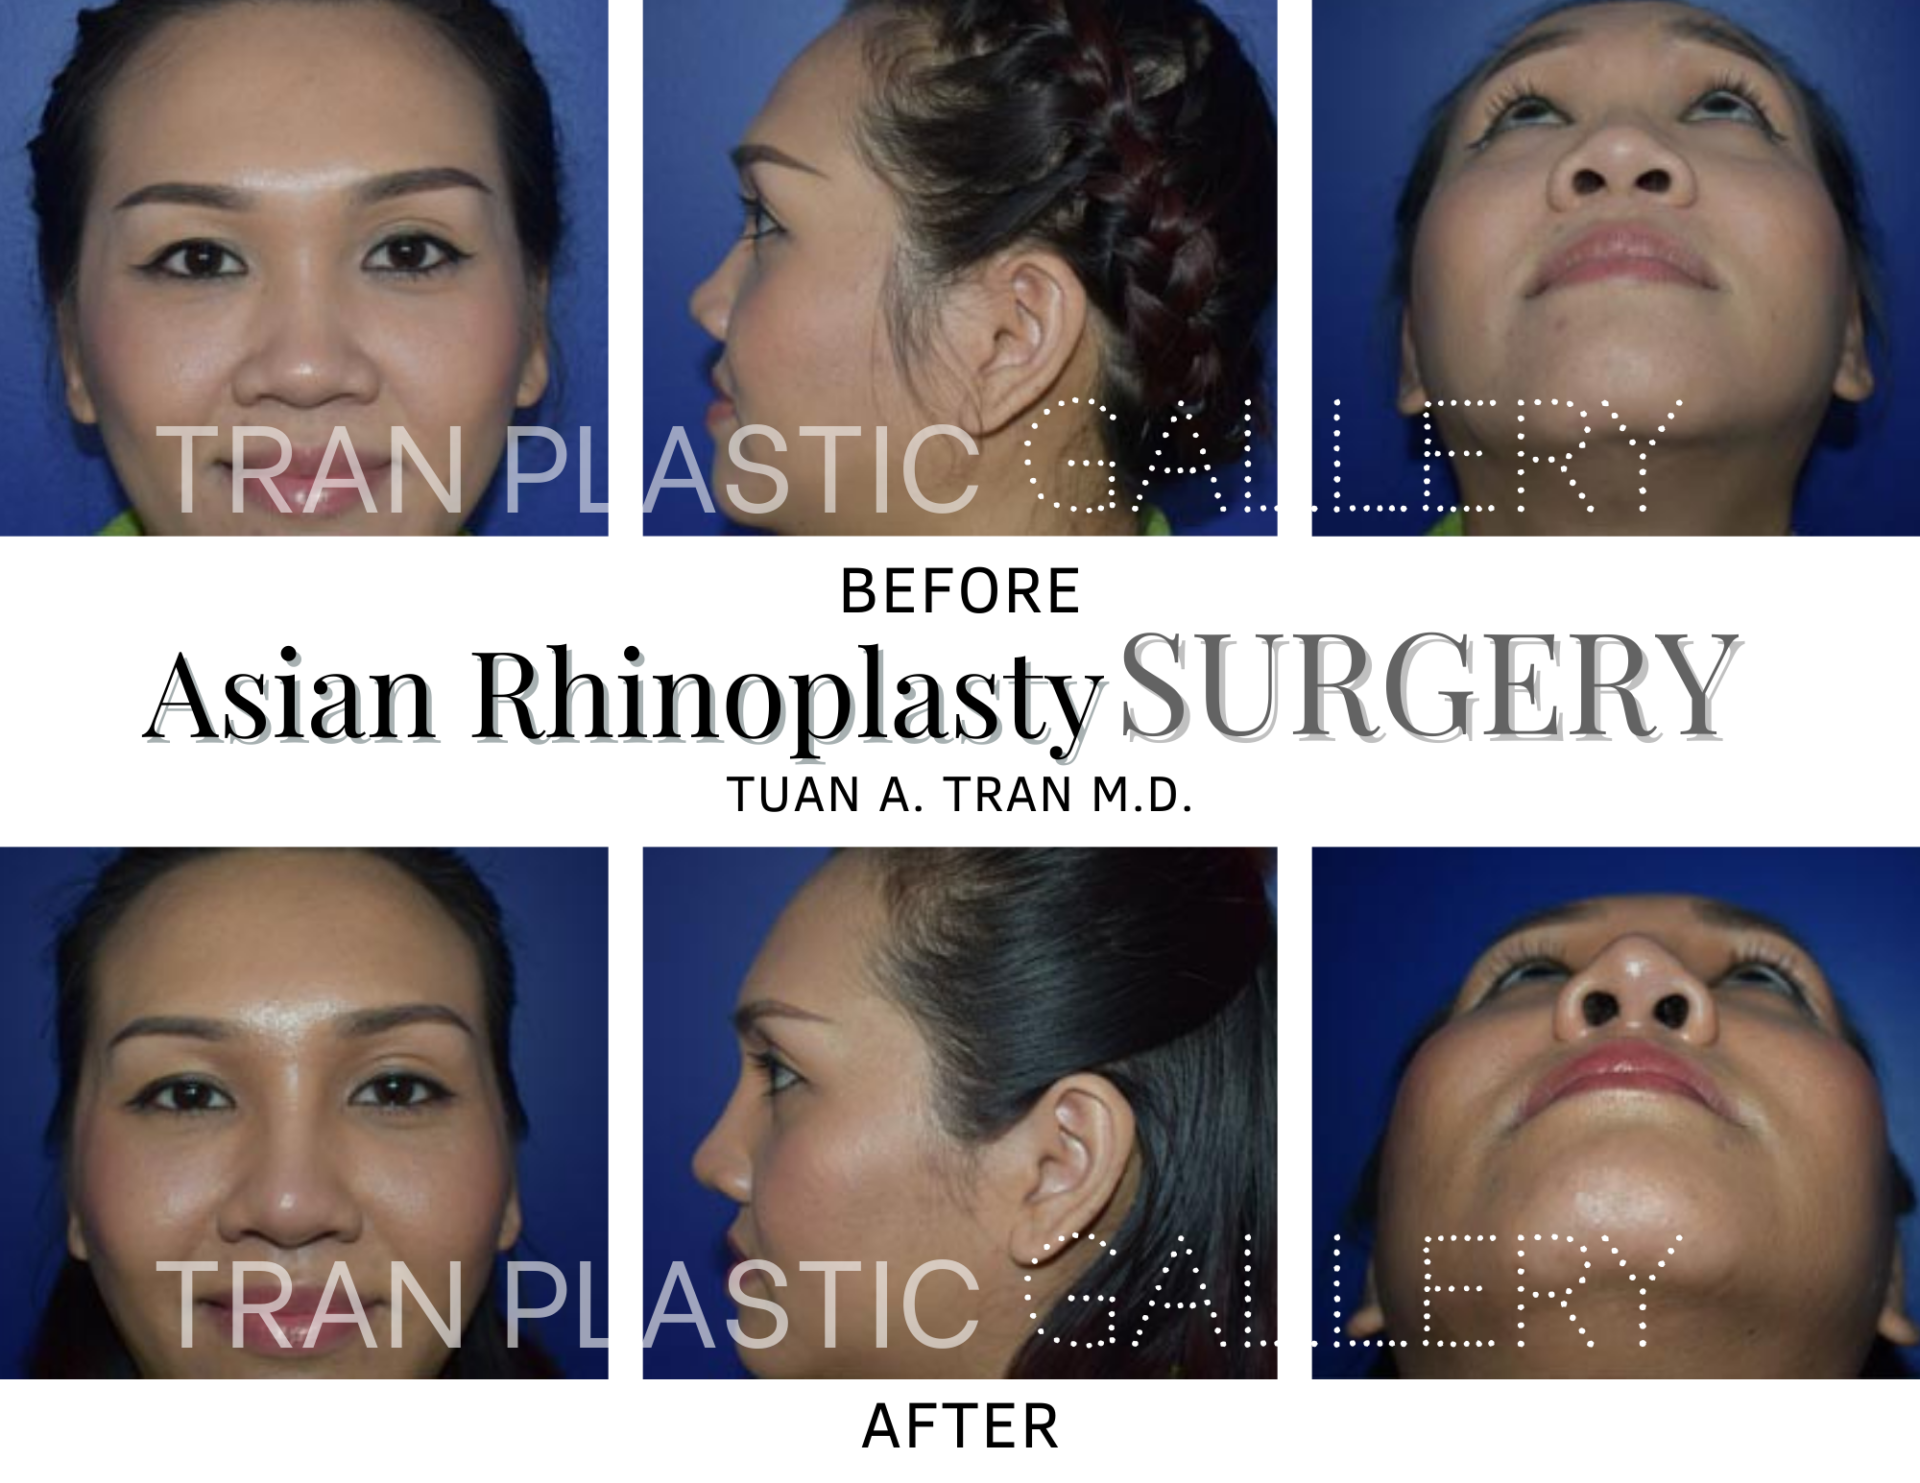 Tran Plastic Surgery - Asian Rhinoplasty